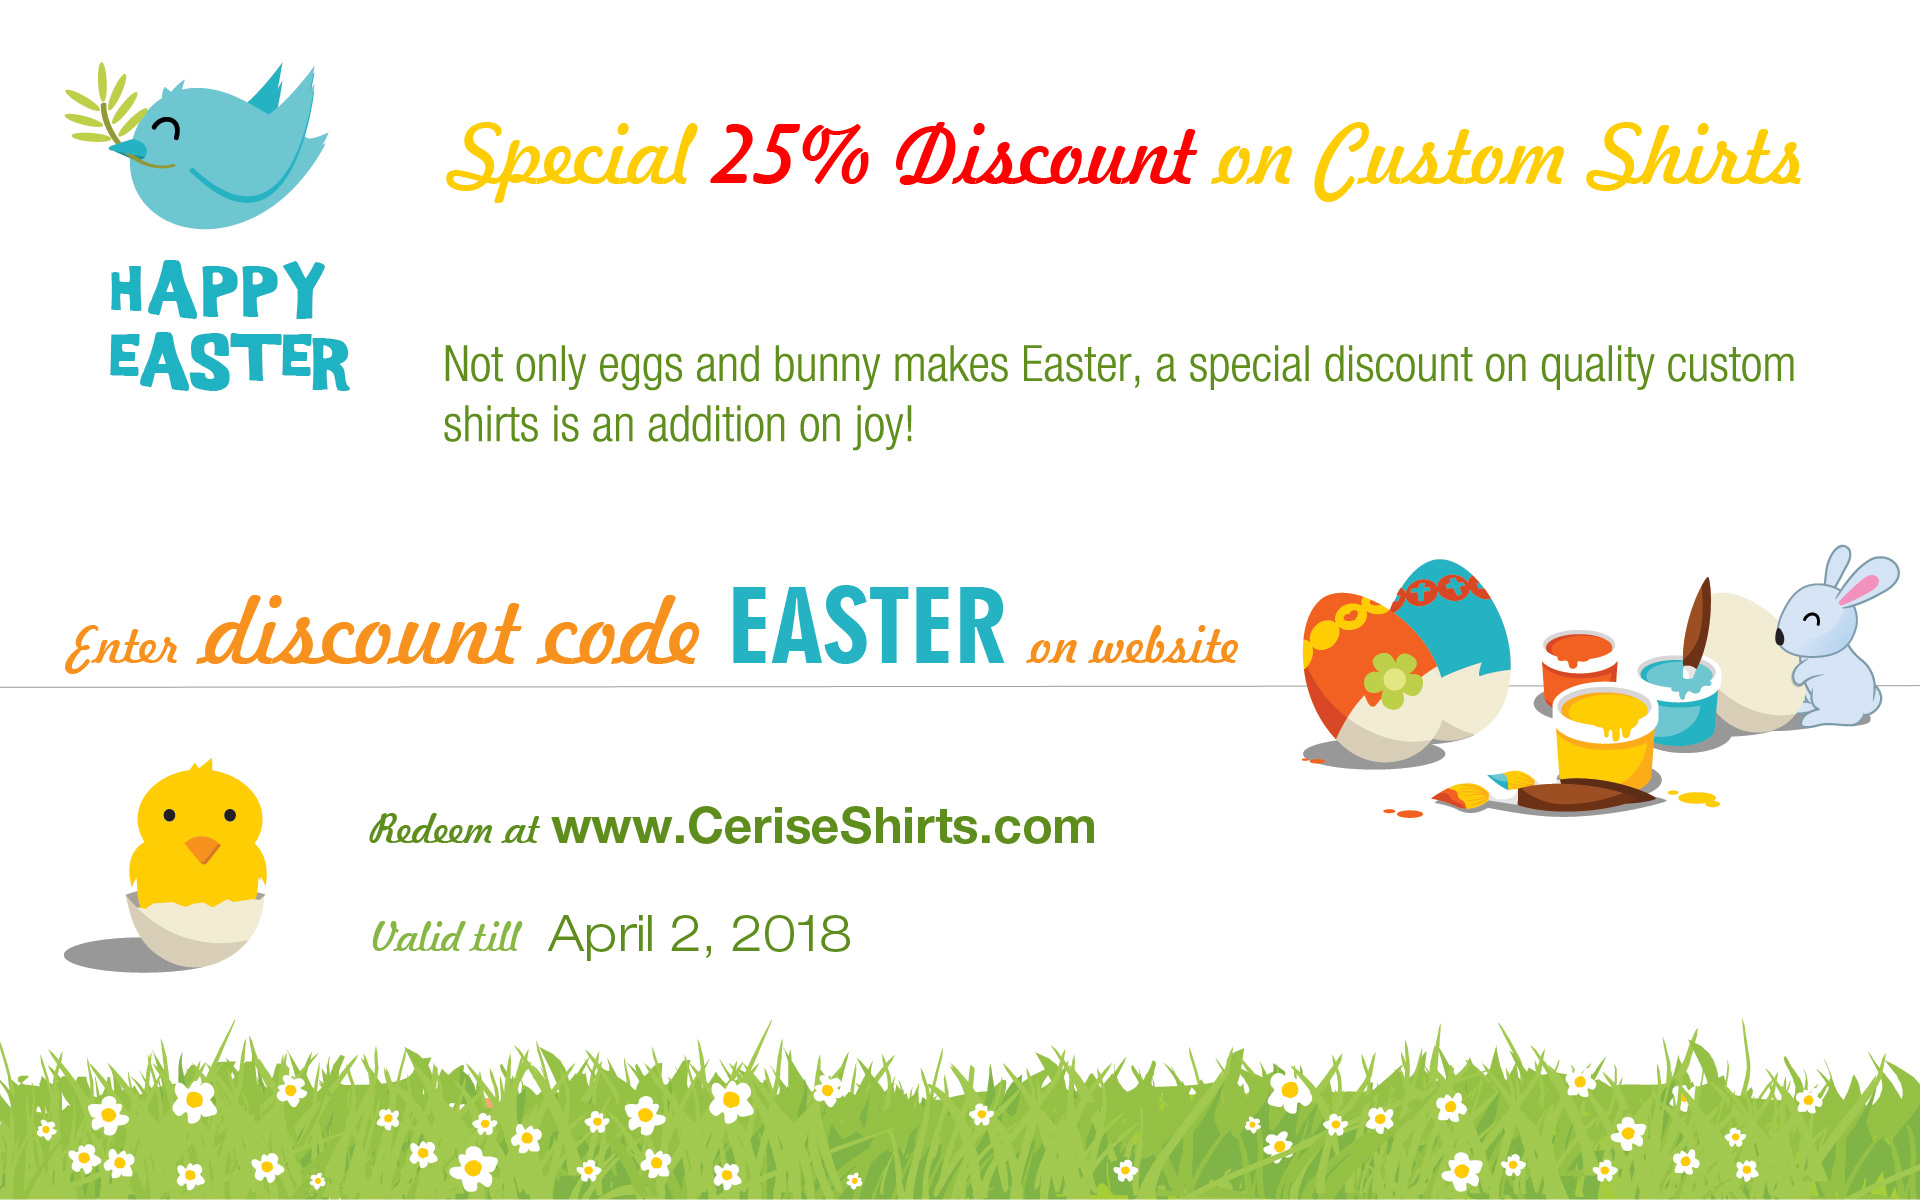 Easter special deal: 25% off on all shirts